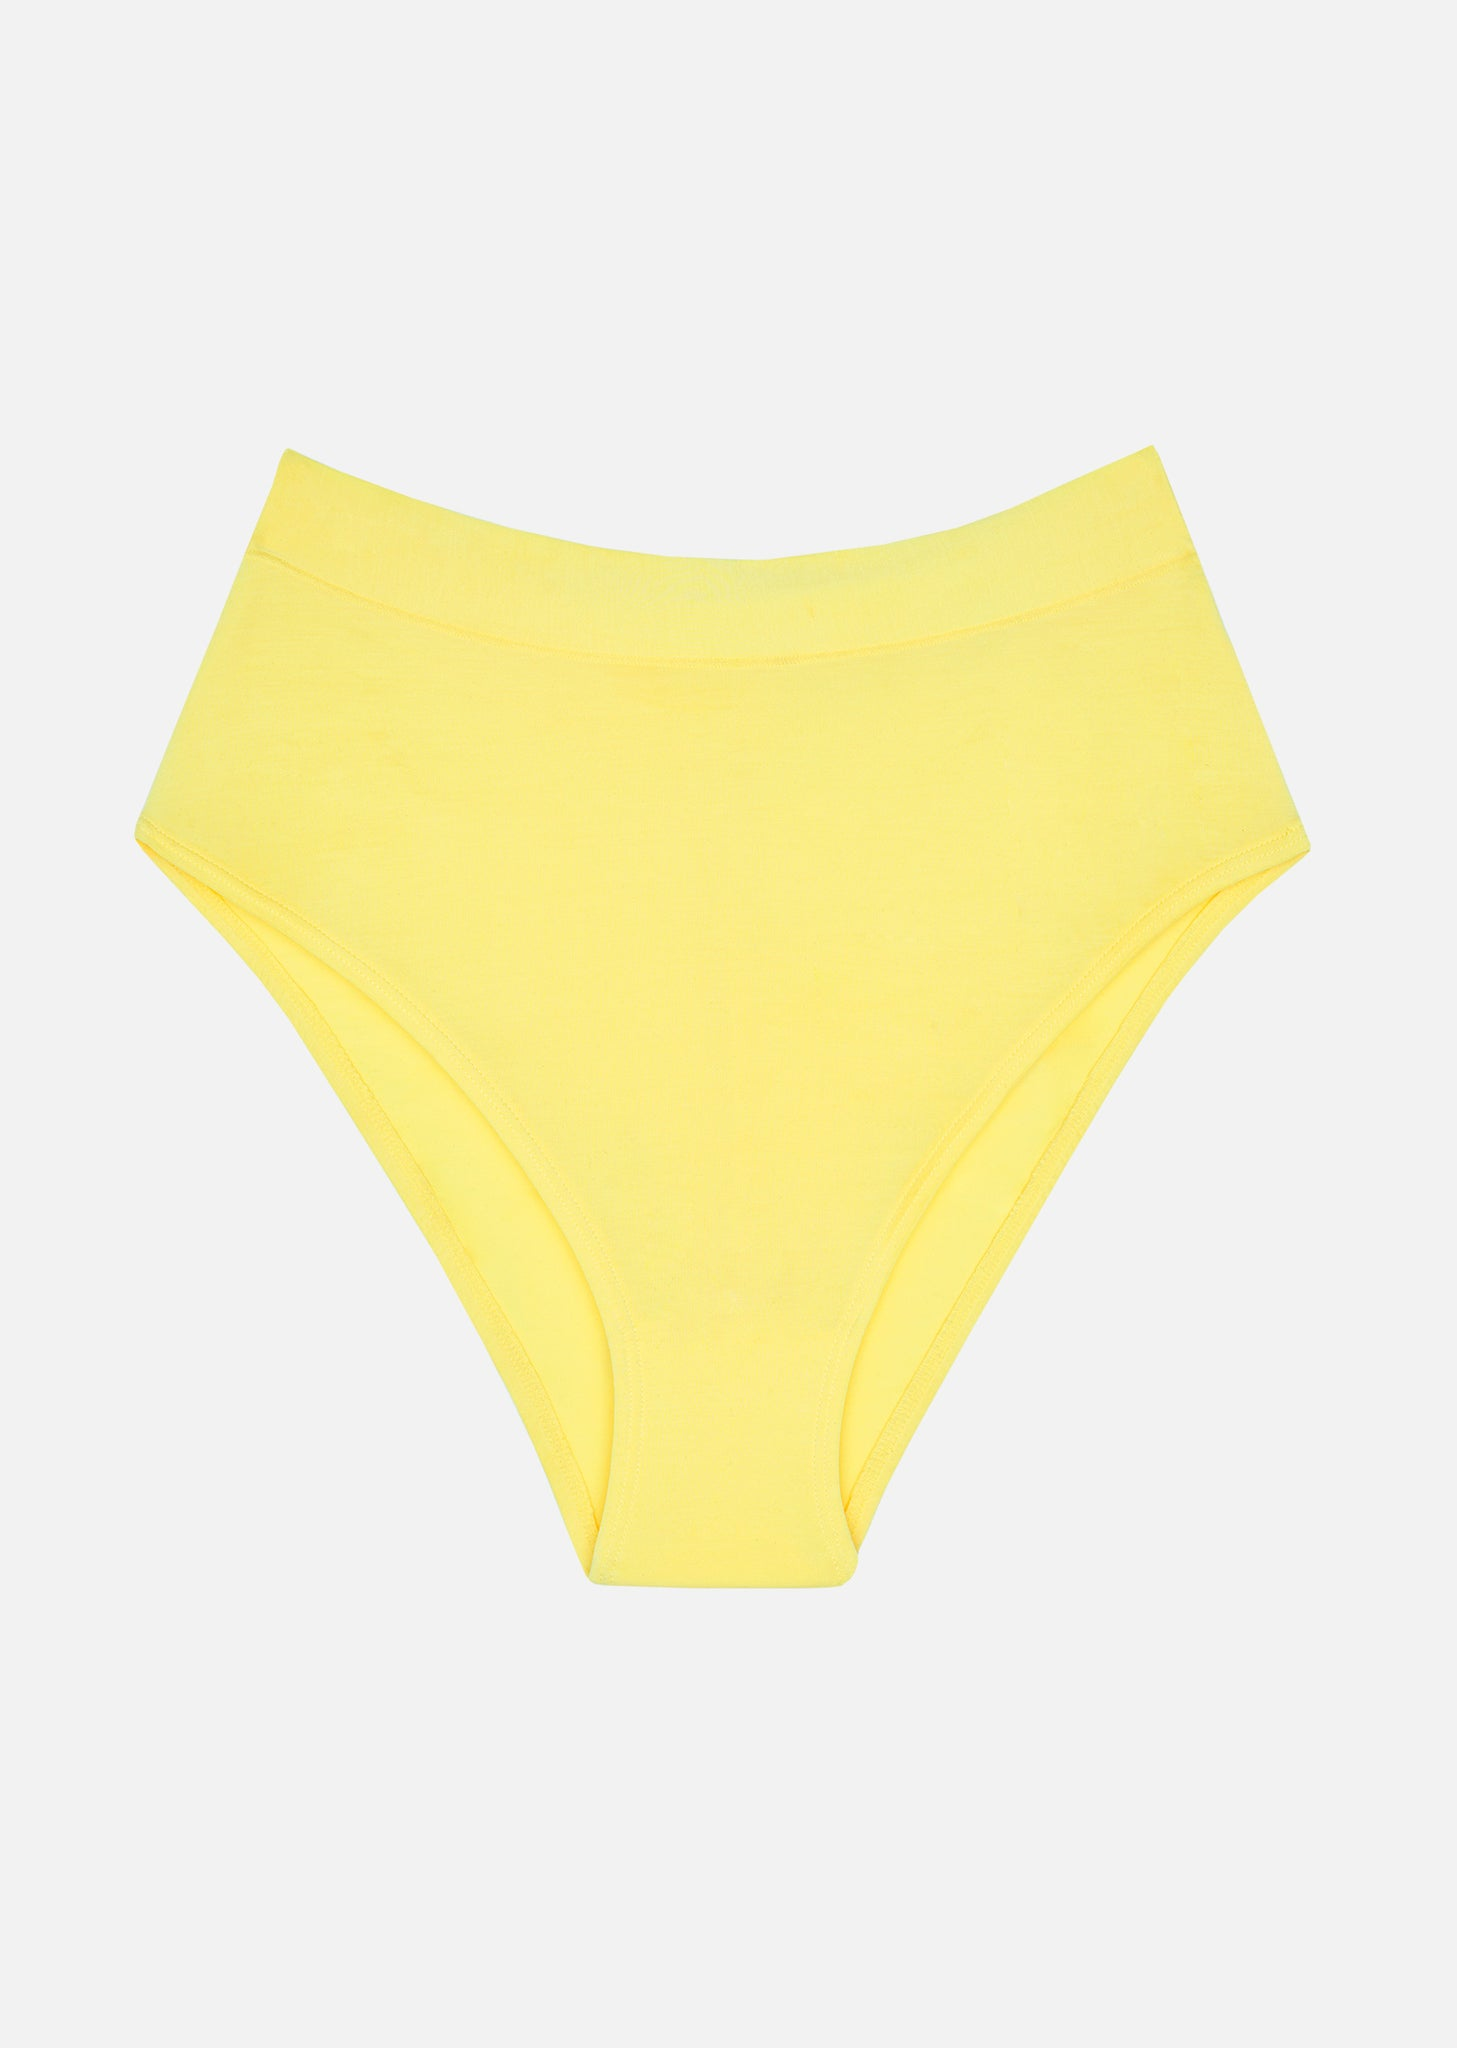 The Highwaist in Citrine - CUUP